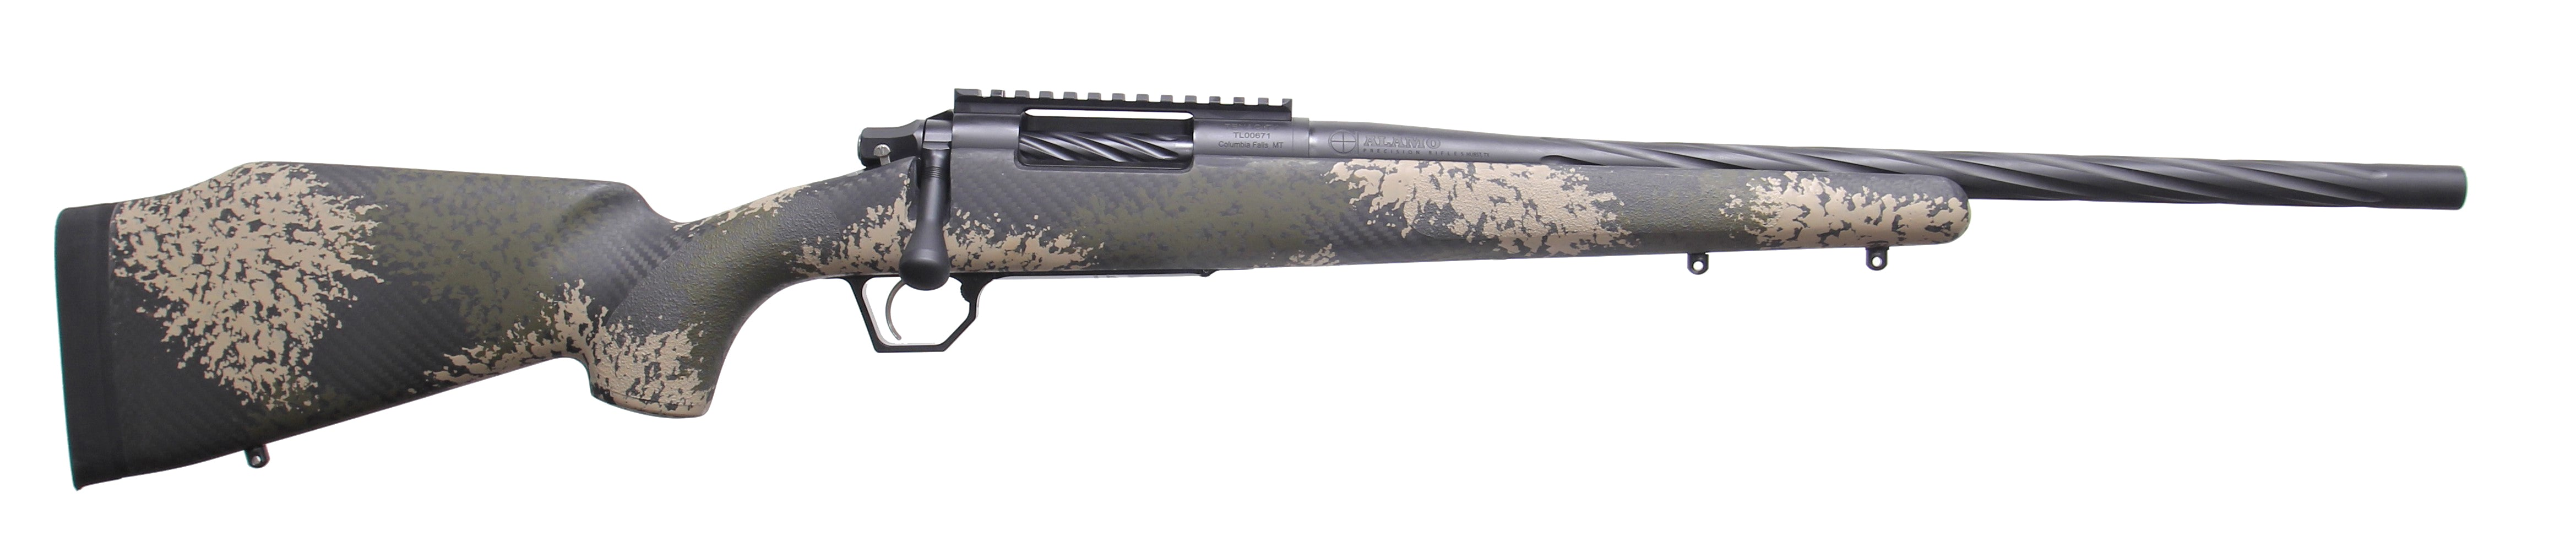 APR Maverick 22 Creedmoor